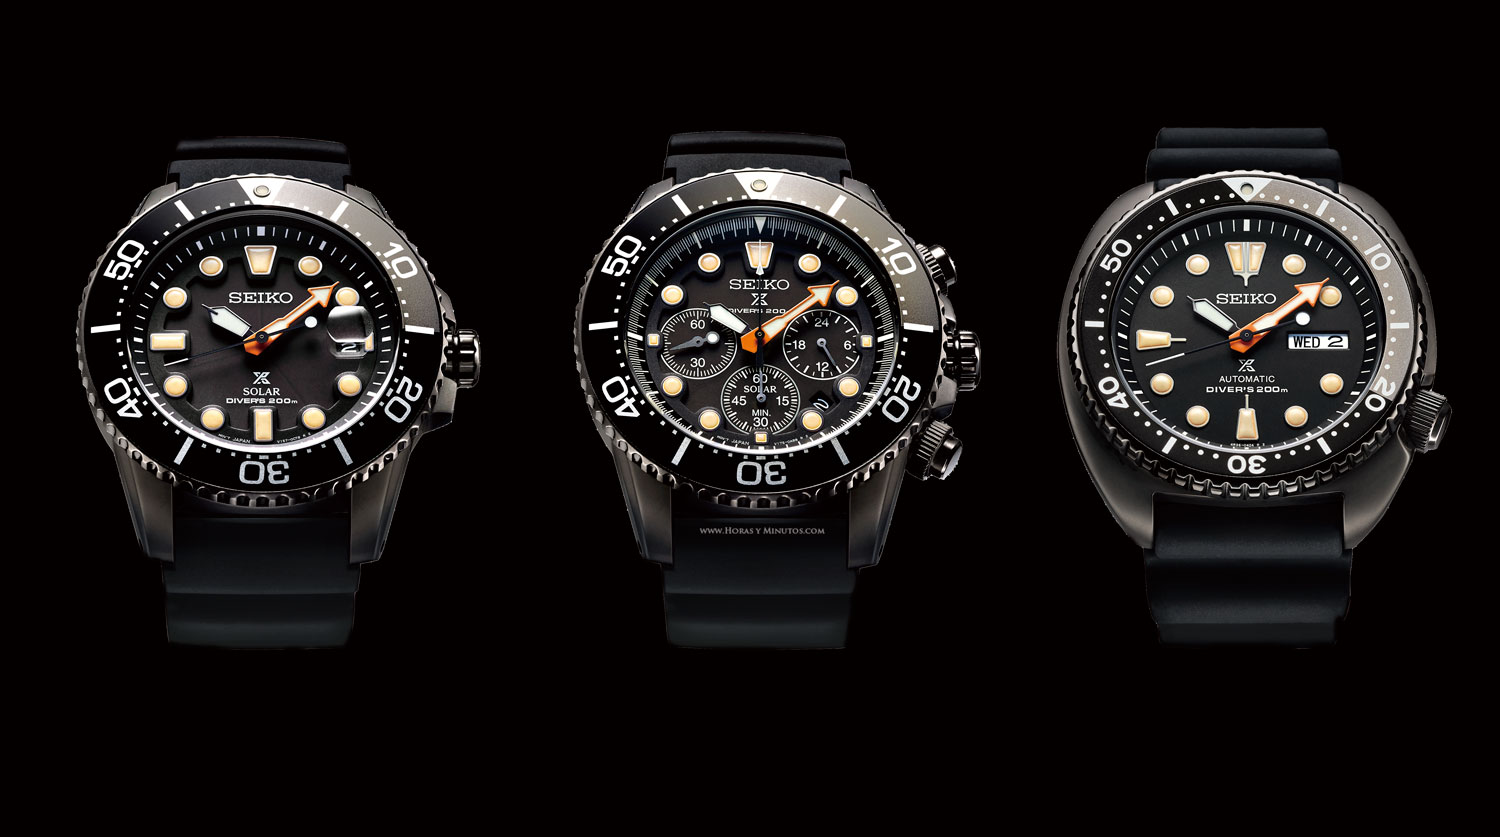 Seiko Prospex The Black Series